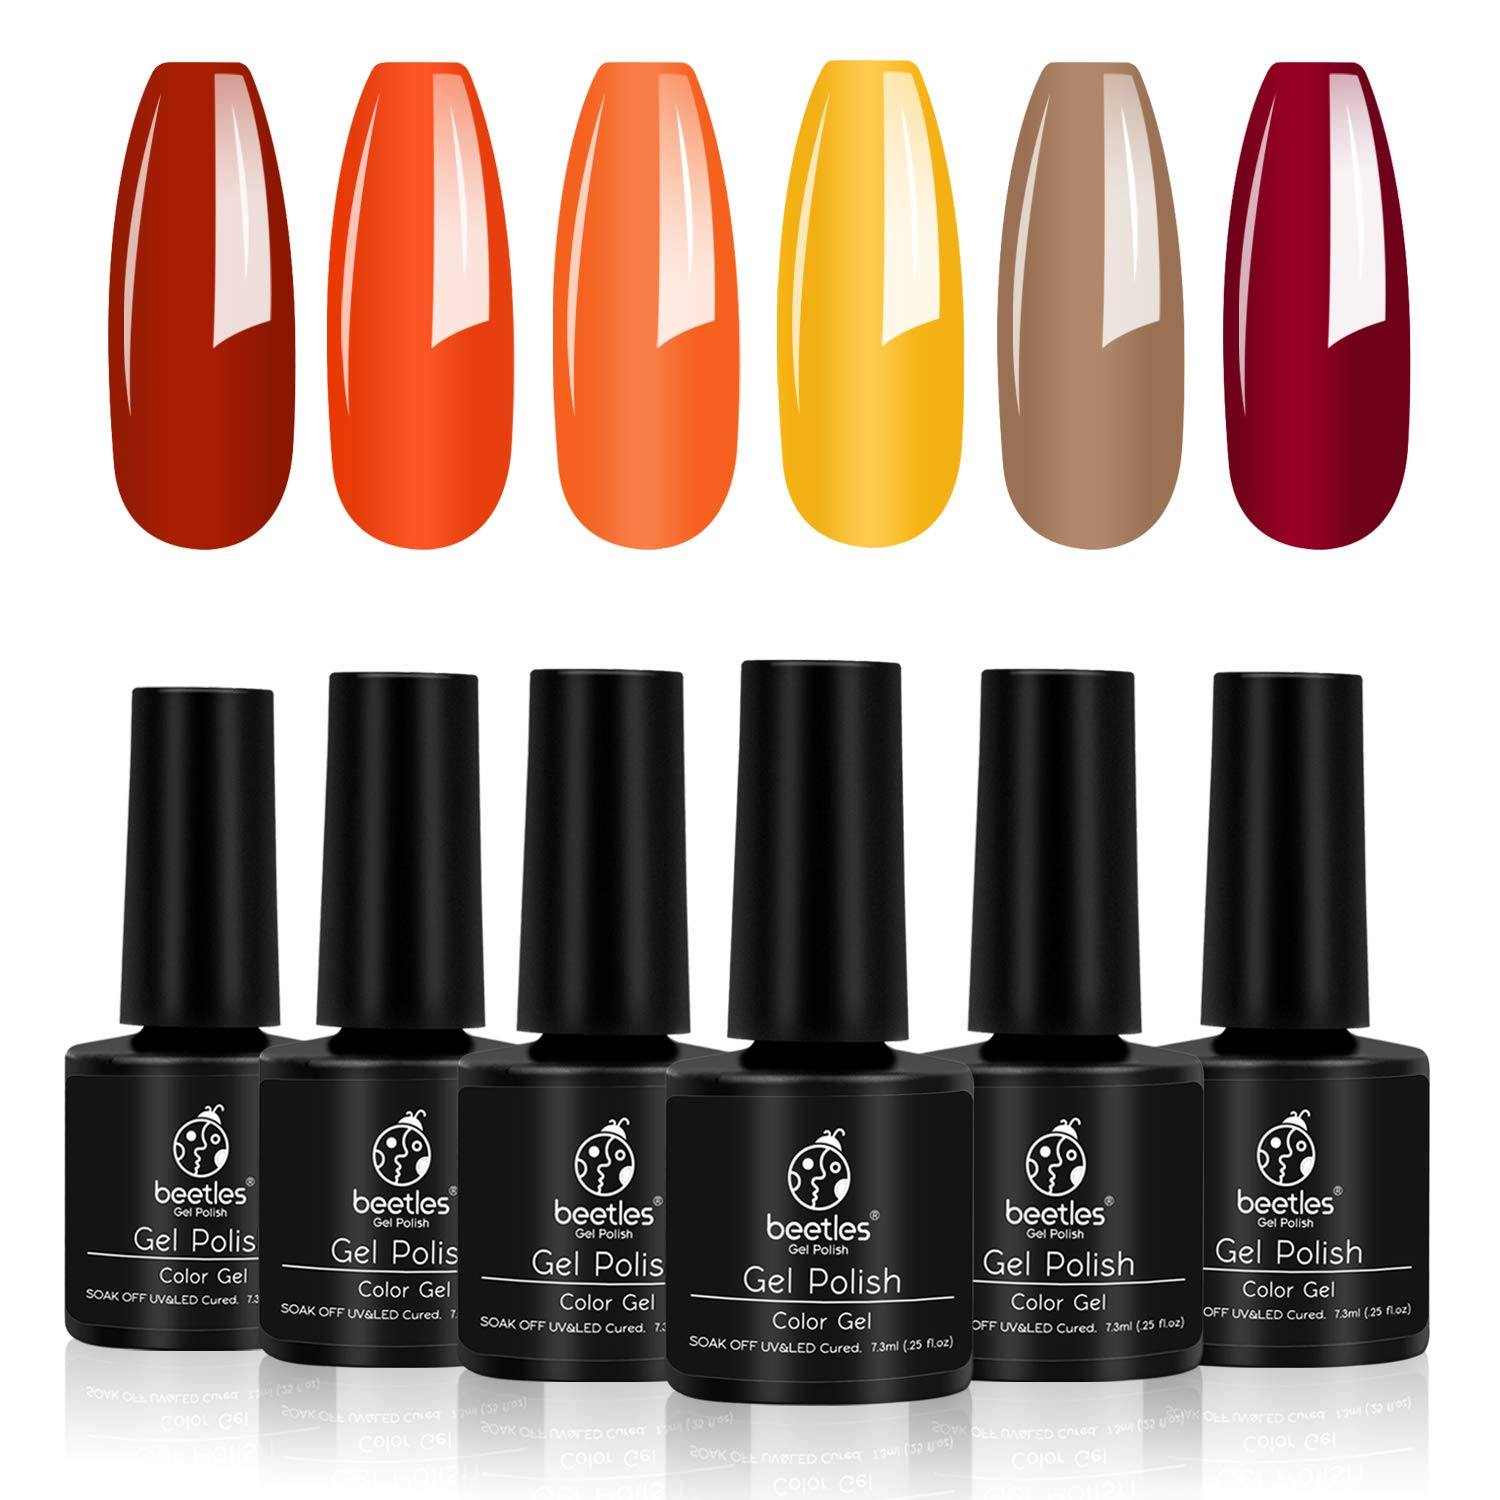 Beetles Gold Yellow Gel Polish Set- 6 Colors Red Gel Nail Polish Autumn Fall Nail Polish Soak Off Nail Polish Set UV Nail Lamp LED Cured, 7.3ml Each Bottle Gel Nail Kit for Summer Fall Nail Art Gift by beetles Gel Polish